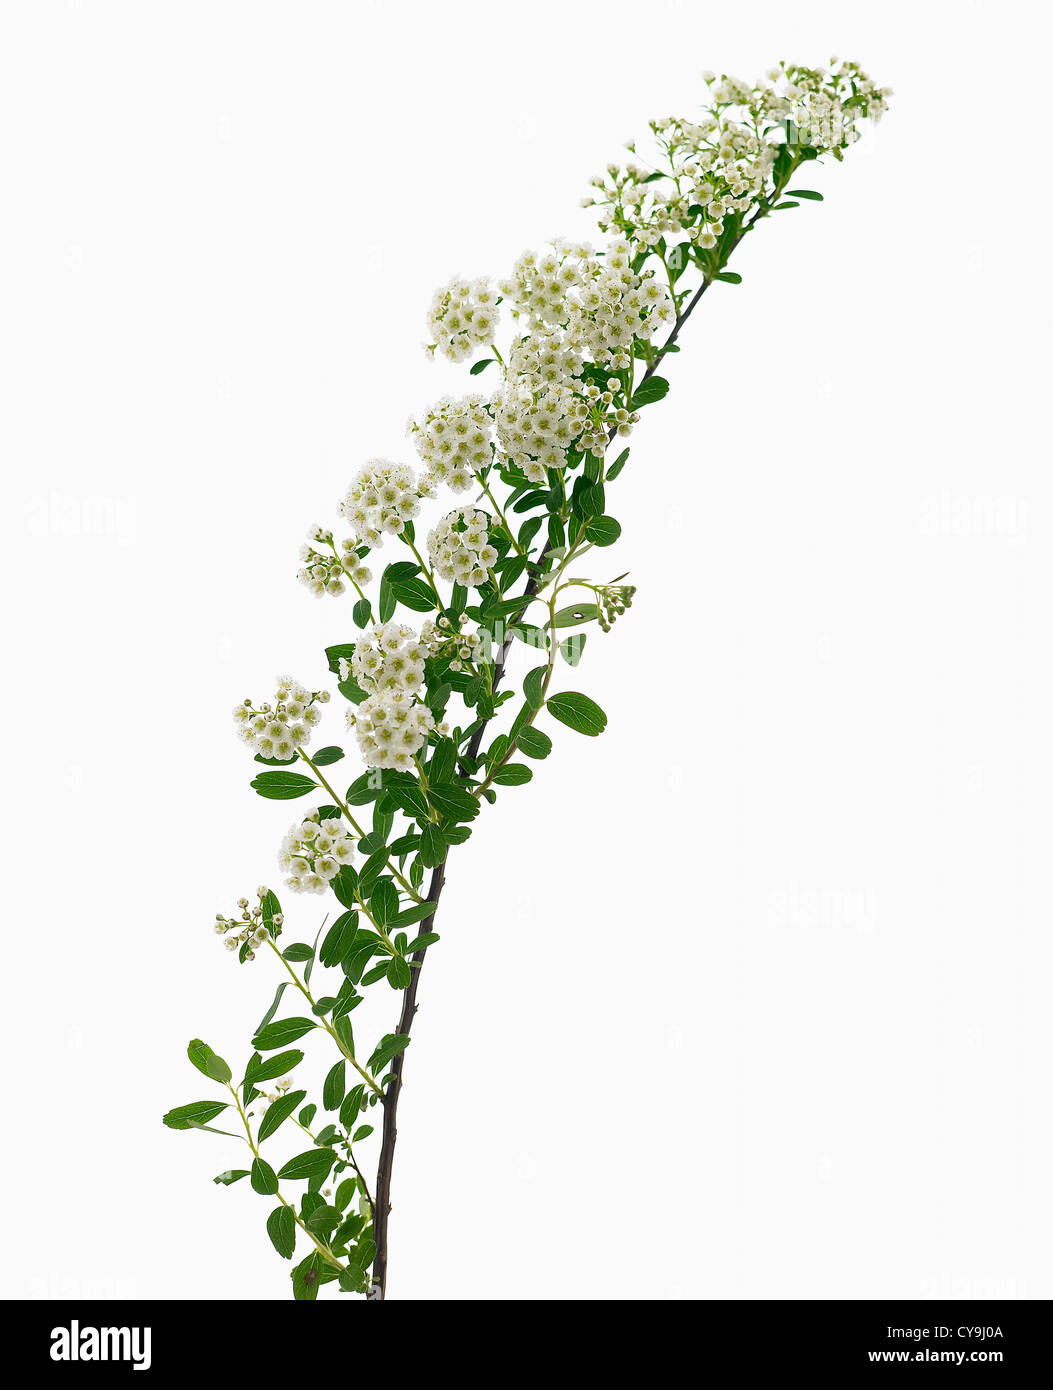 White Flowers On Single Stem Against A White Background Cutout Stock